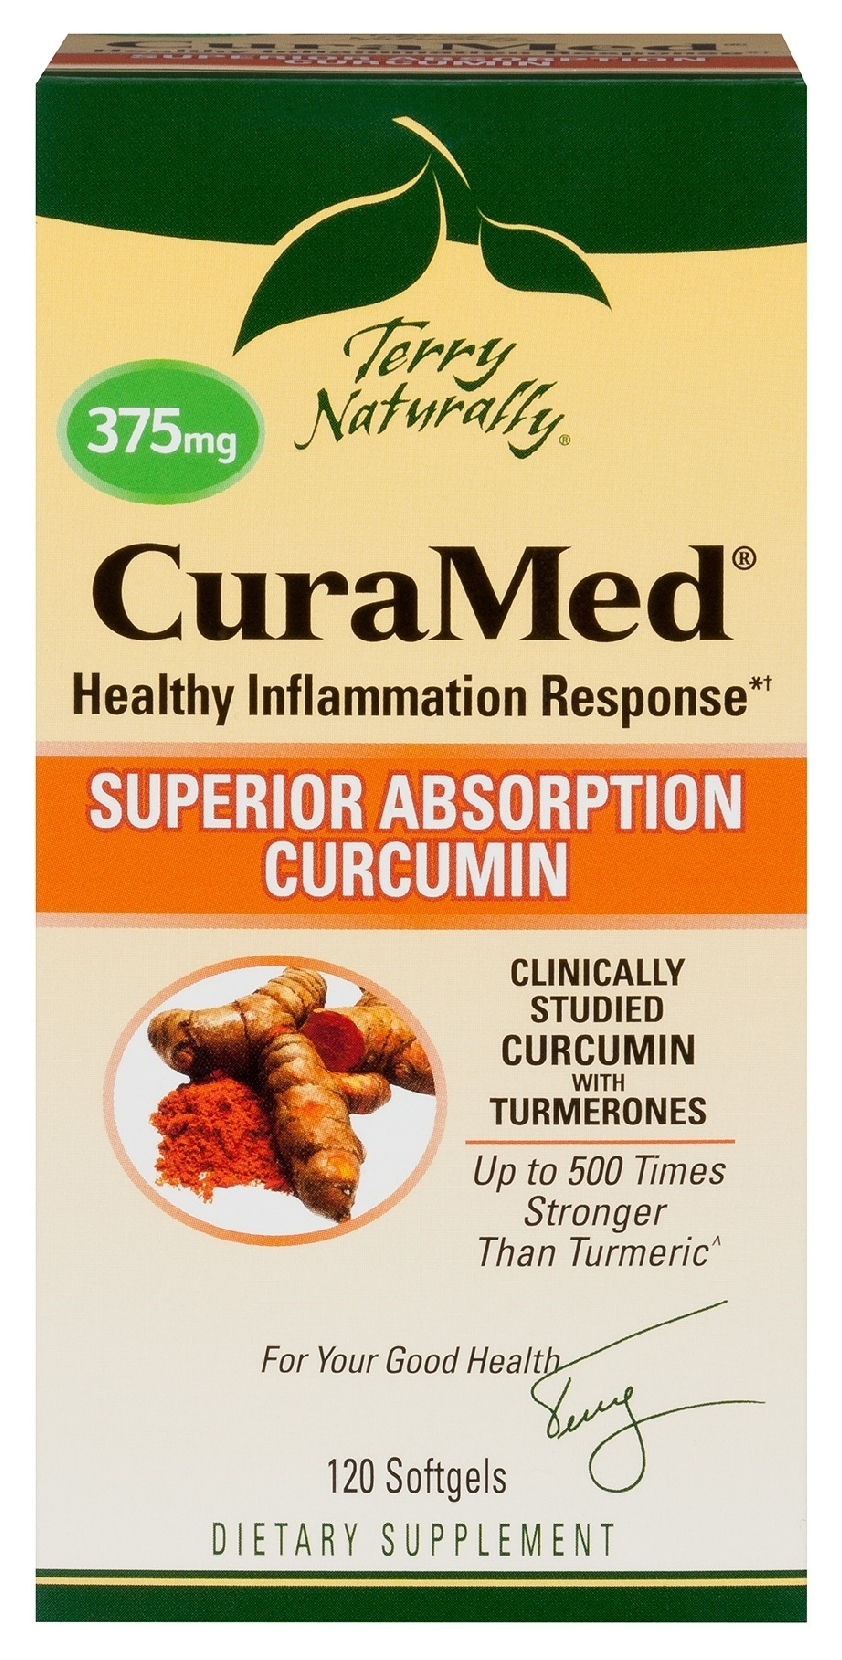 Terry Naturally CuraMed 375 mg 60 sgels by EuroPharma